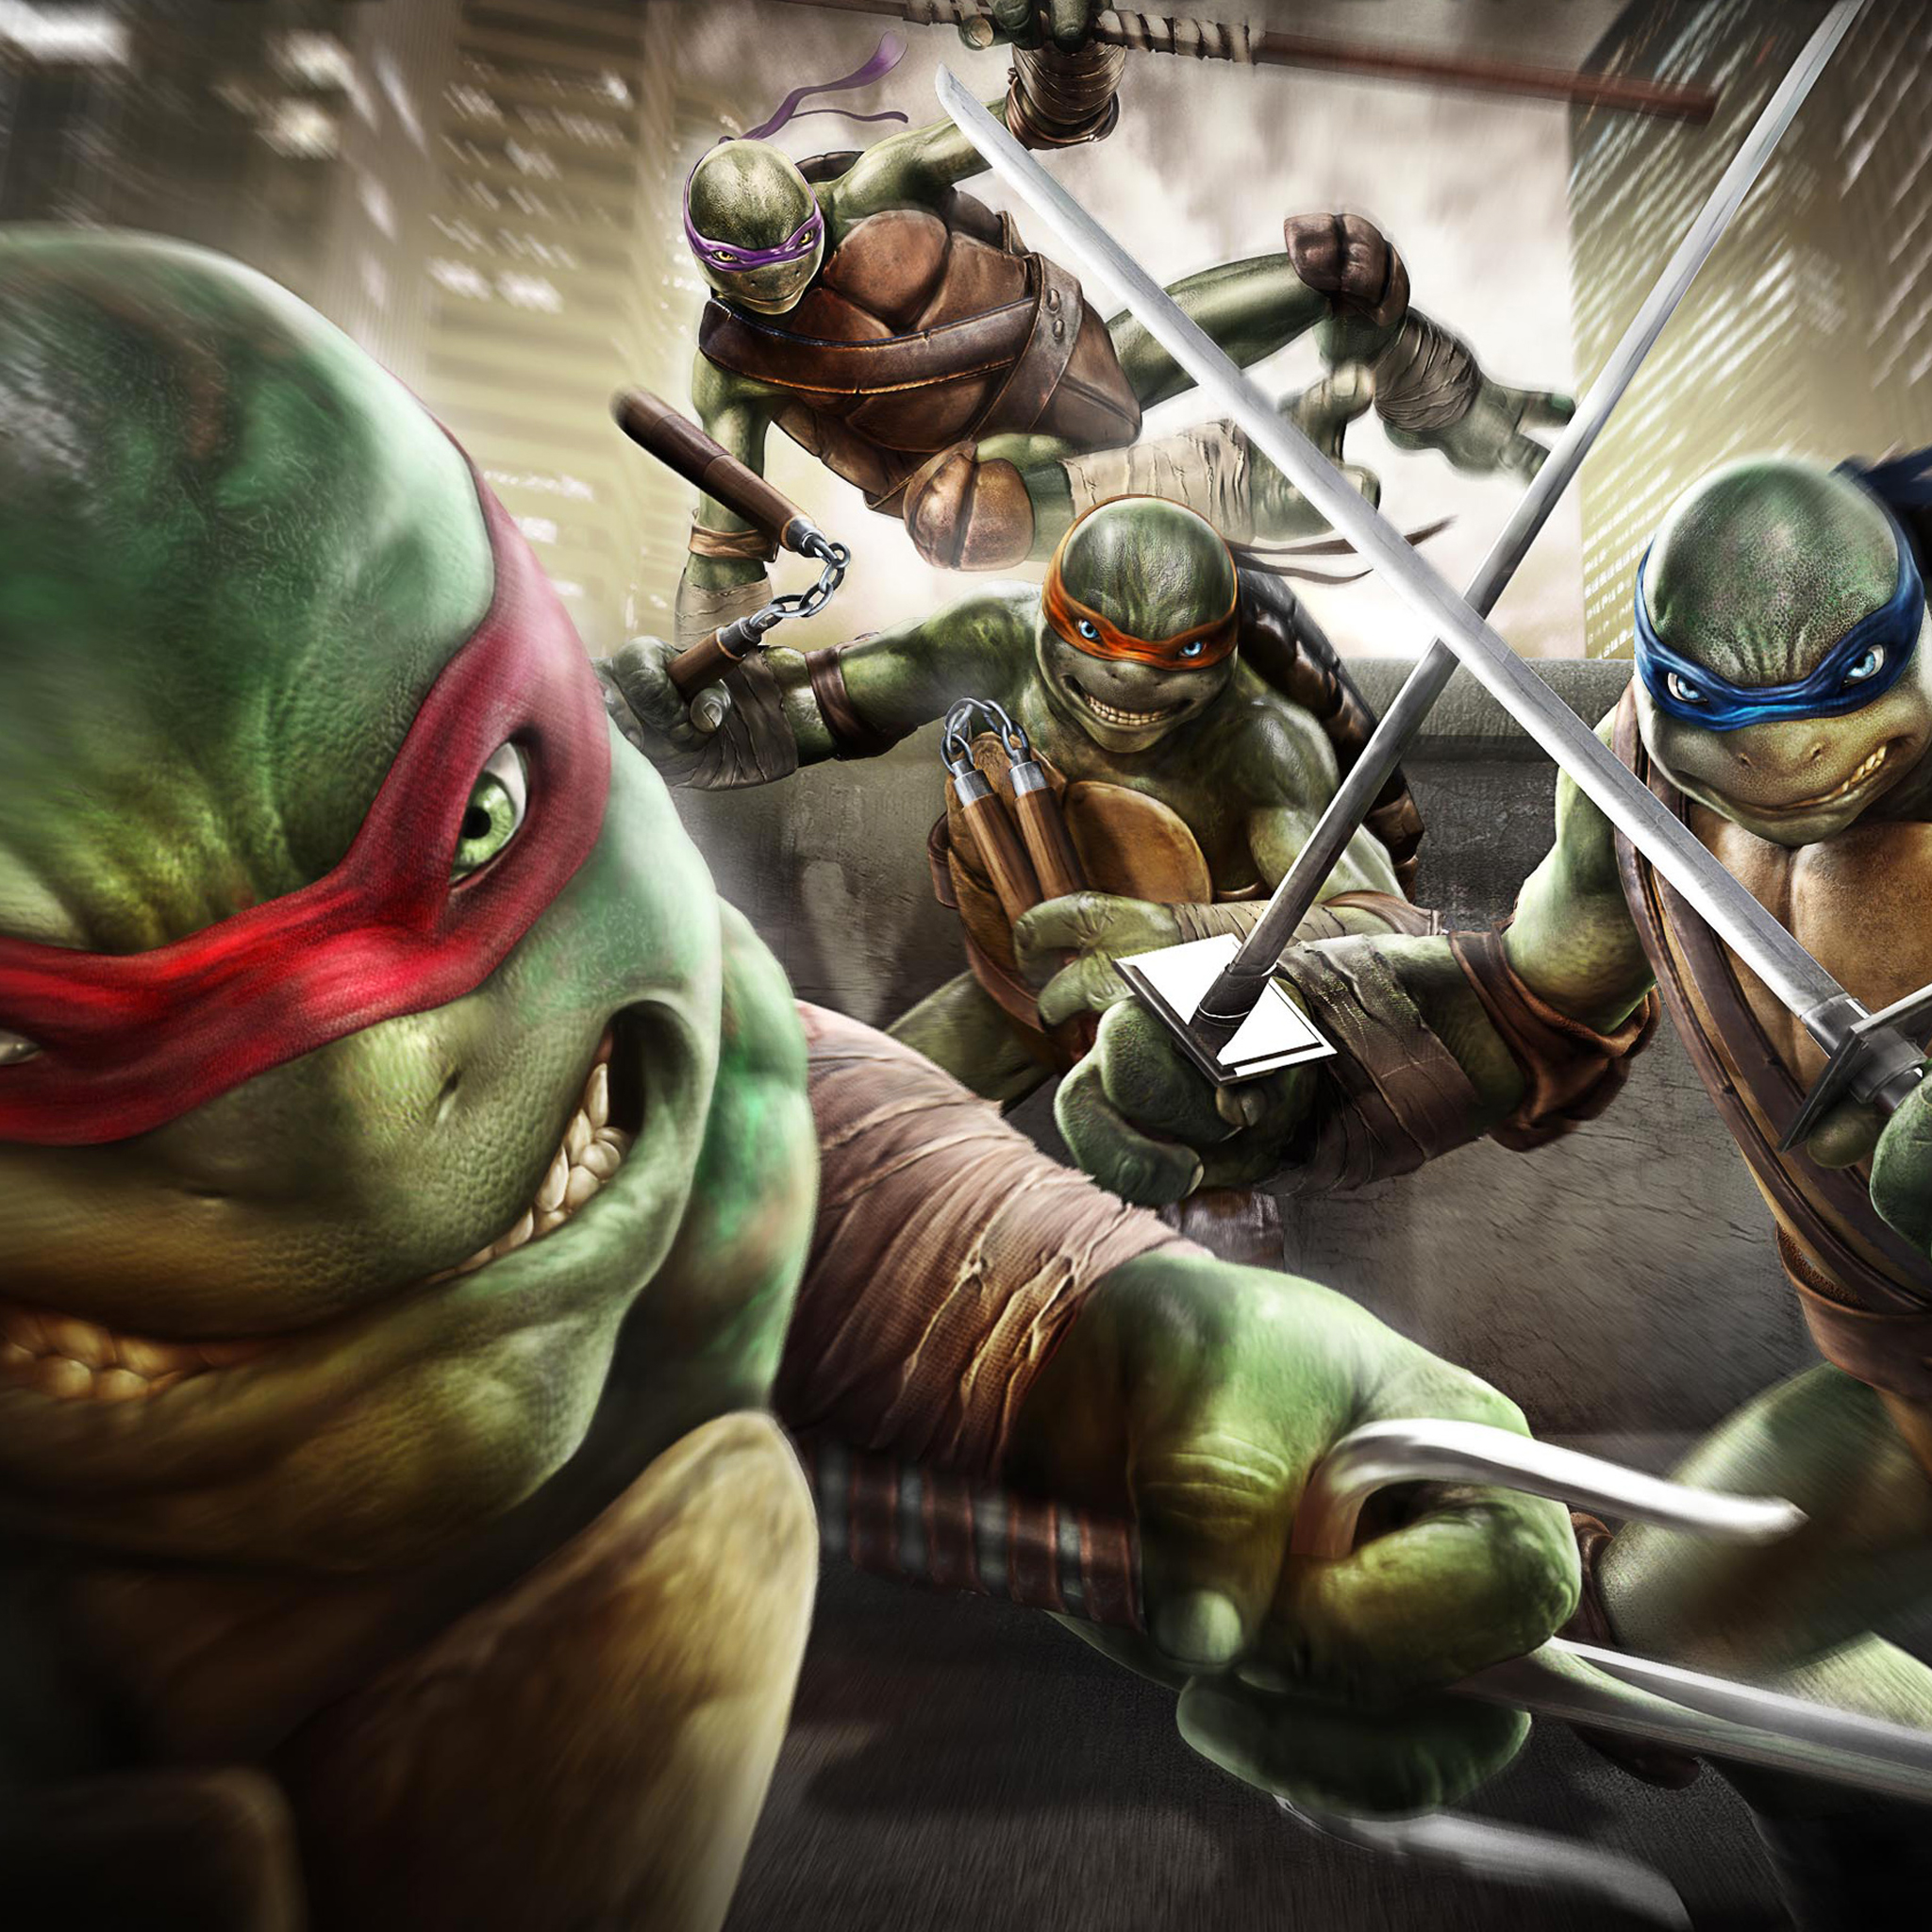 Ninja Turtles Out of the Shadows Game 3Wallpapers iPad Ninja Turtles Out of the Shadows Game   iPad